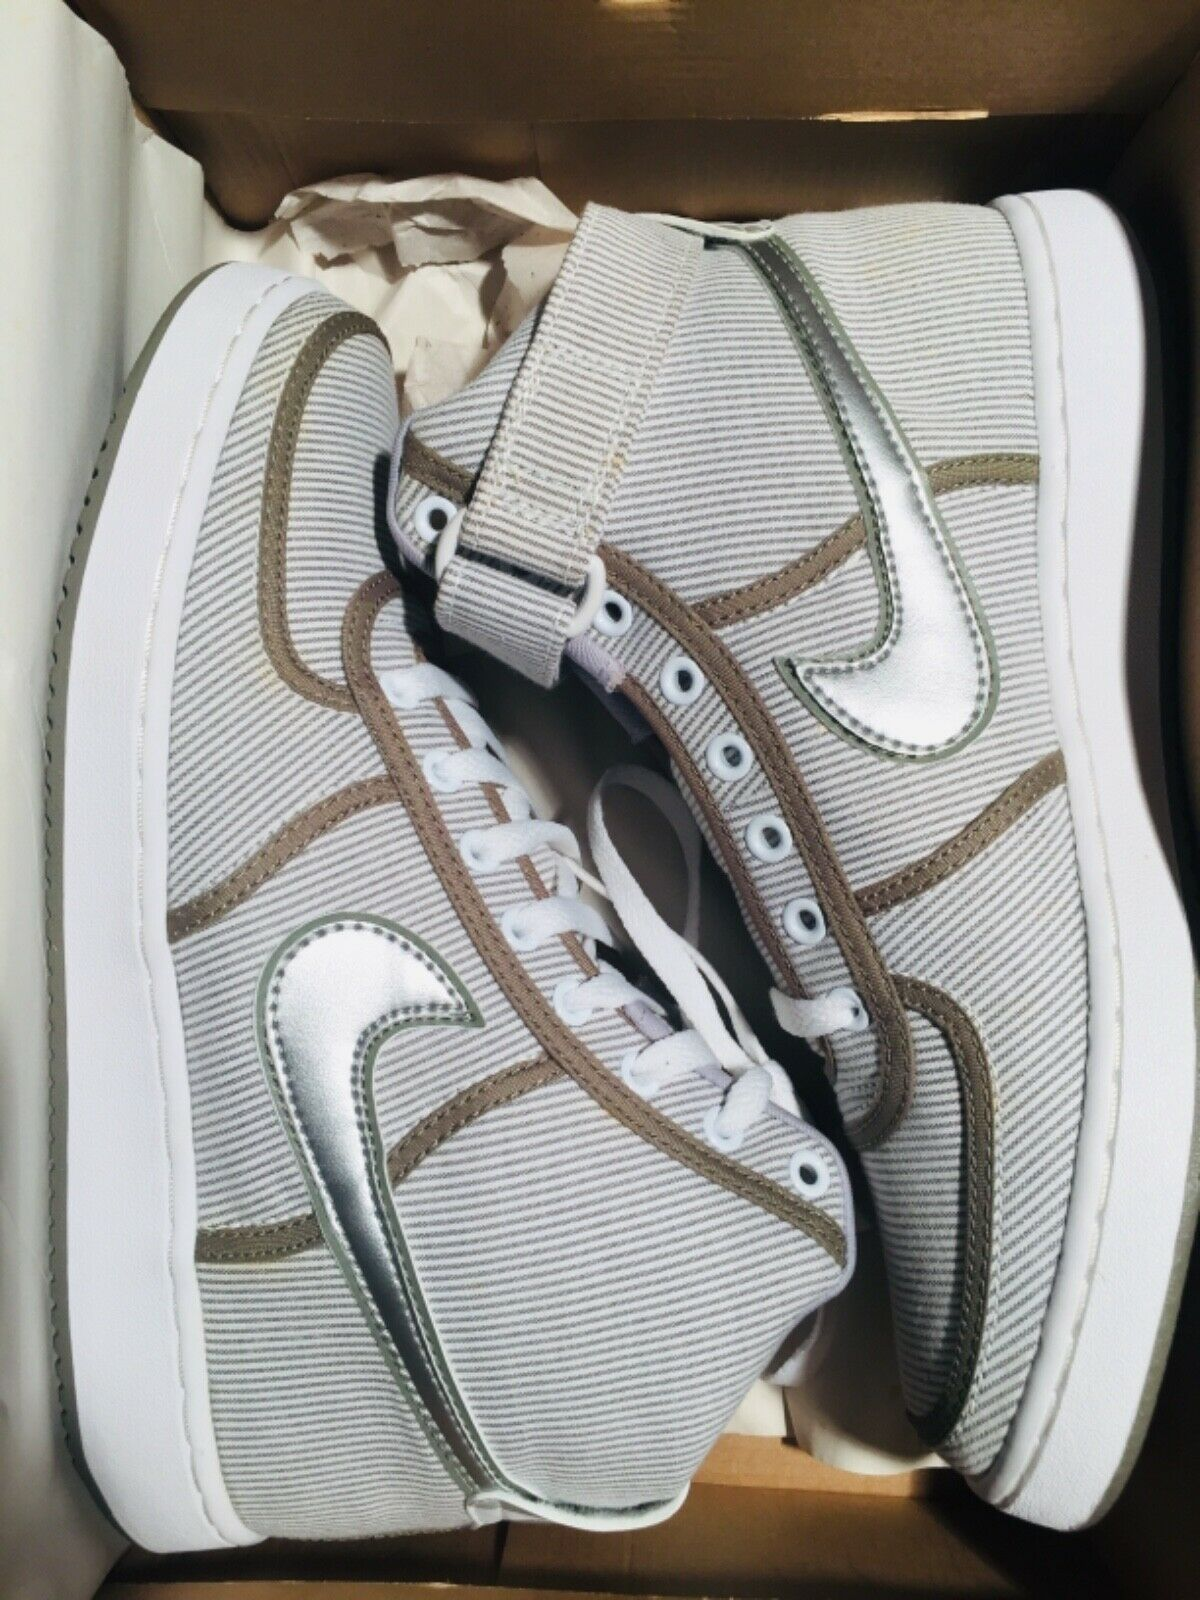 Vintage Supreme Nike Vandal shoes size 9.5 great condition. Box, extra laces.